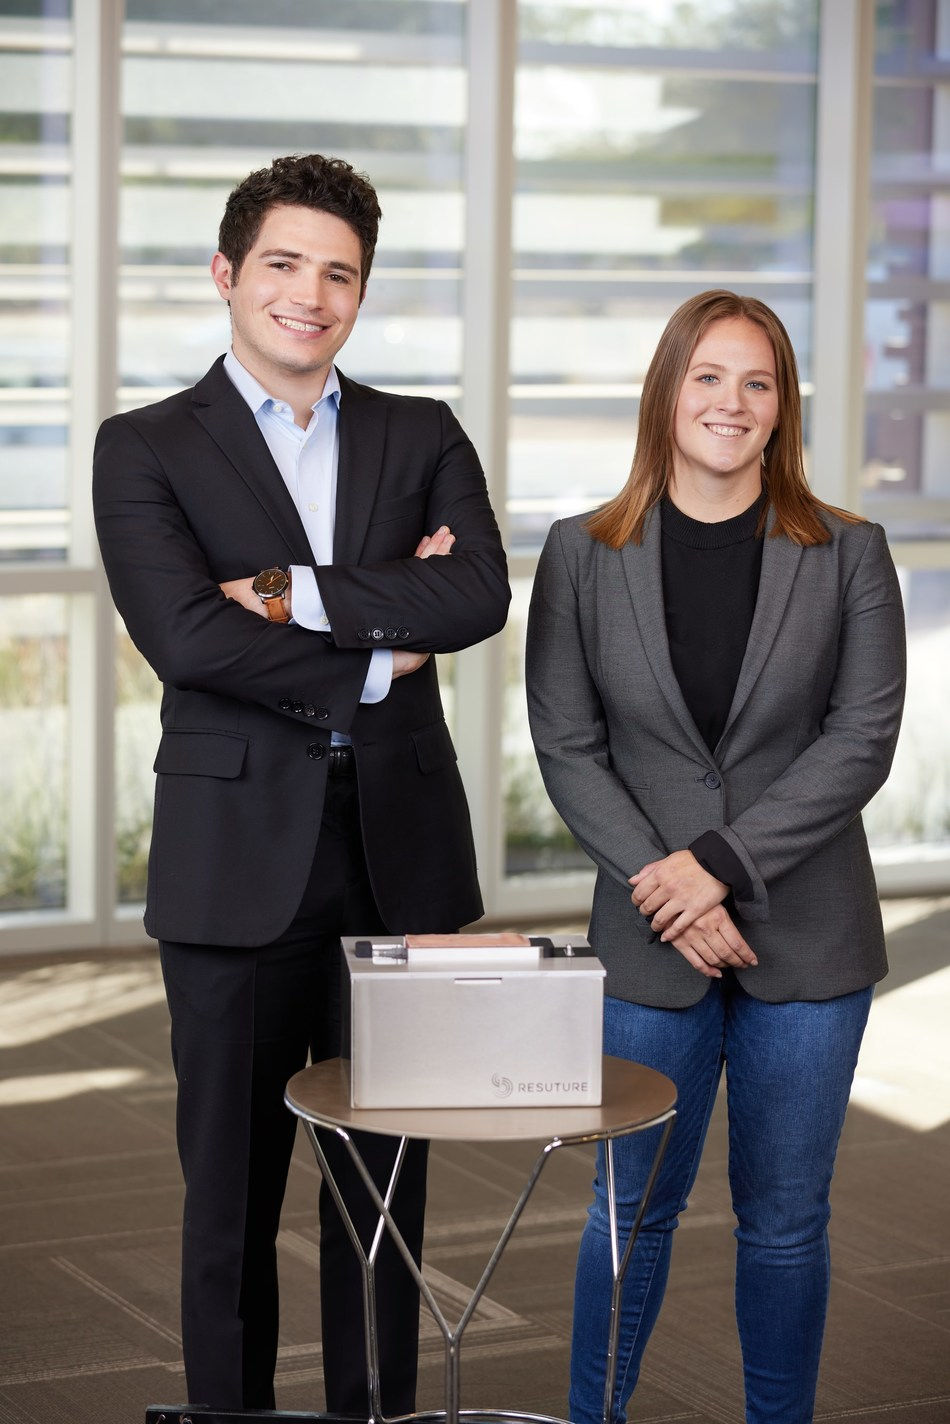 Ben Knapp and Hannah Eherenfeldt photographed with the ReSuture Open Vascular Training System